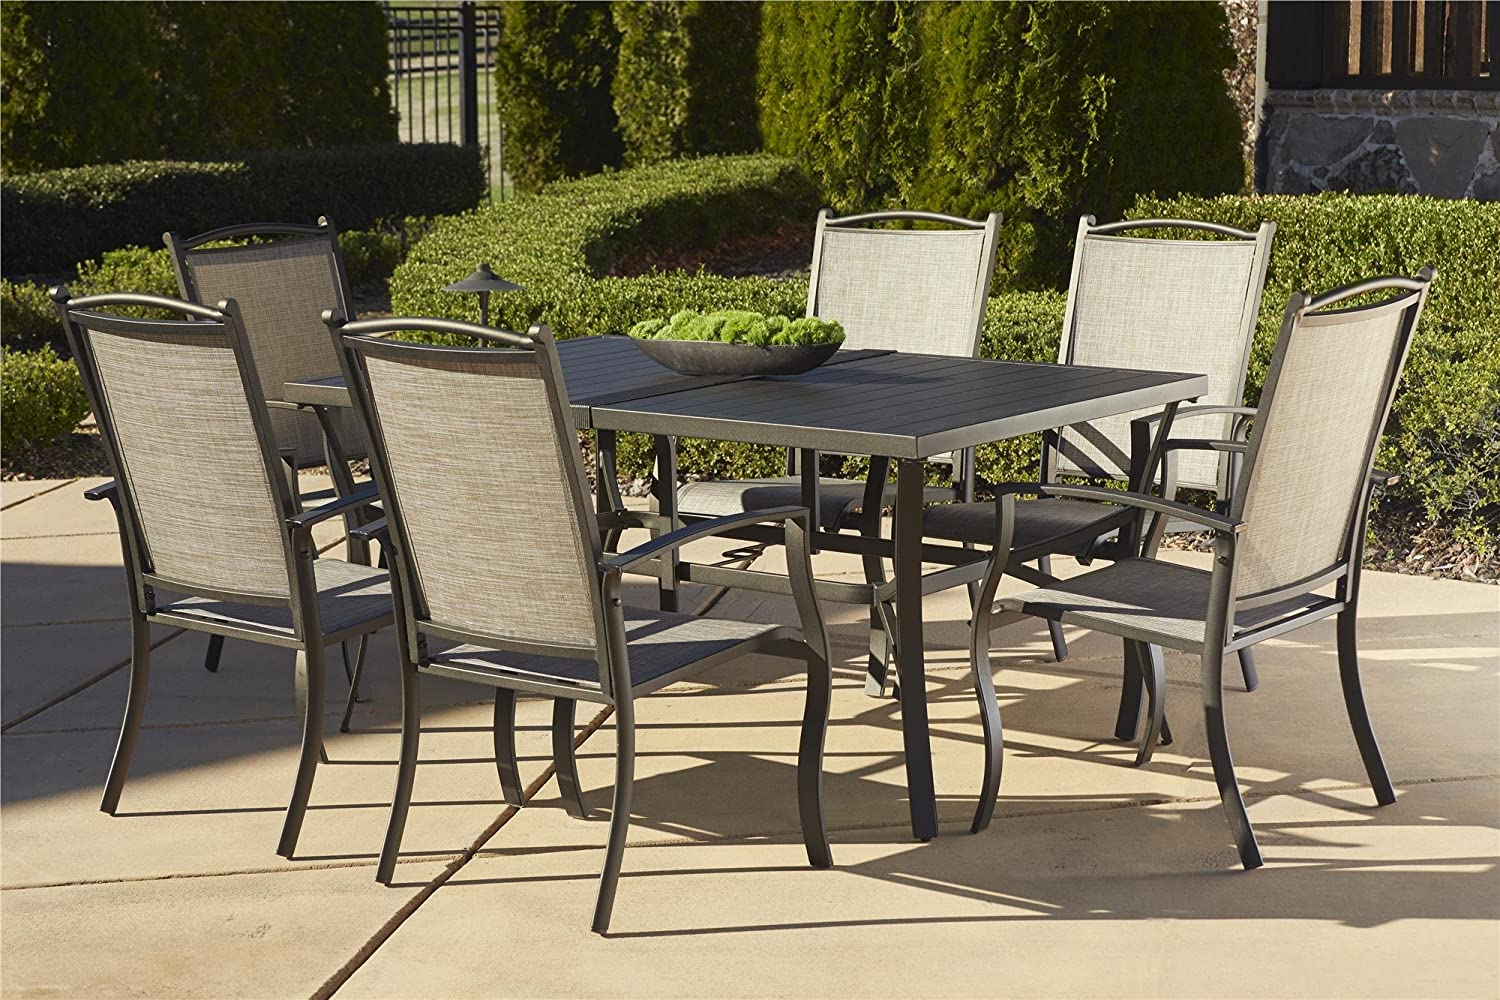 amazon dining garden green seats piece dp com providence set outdoor patio